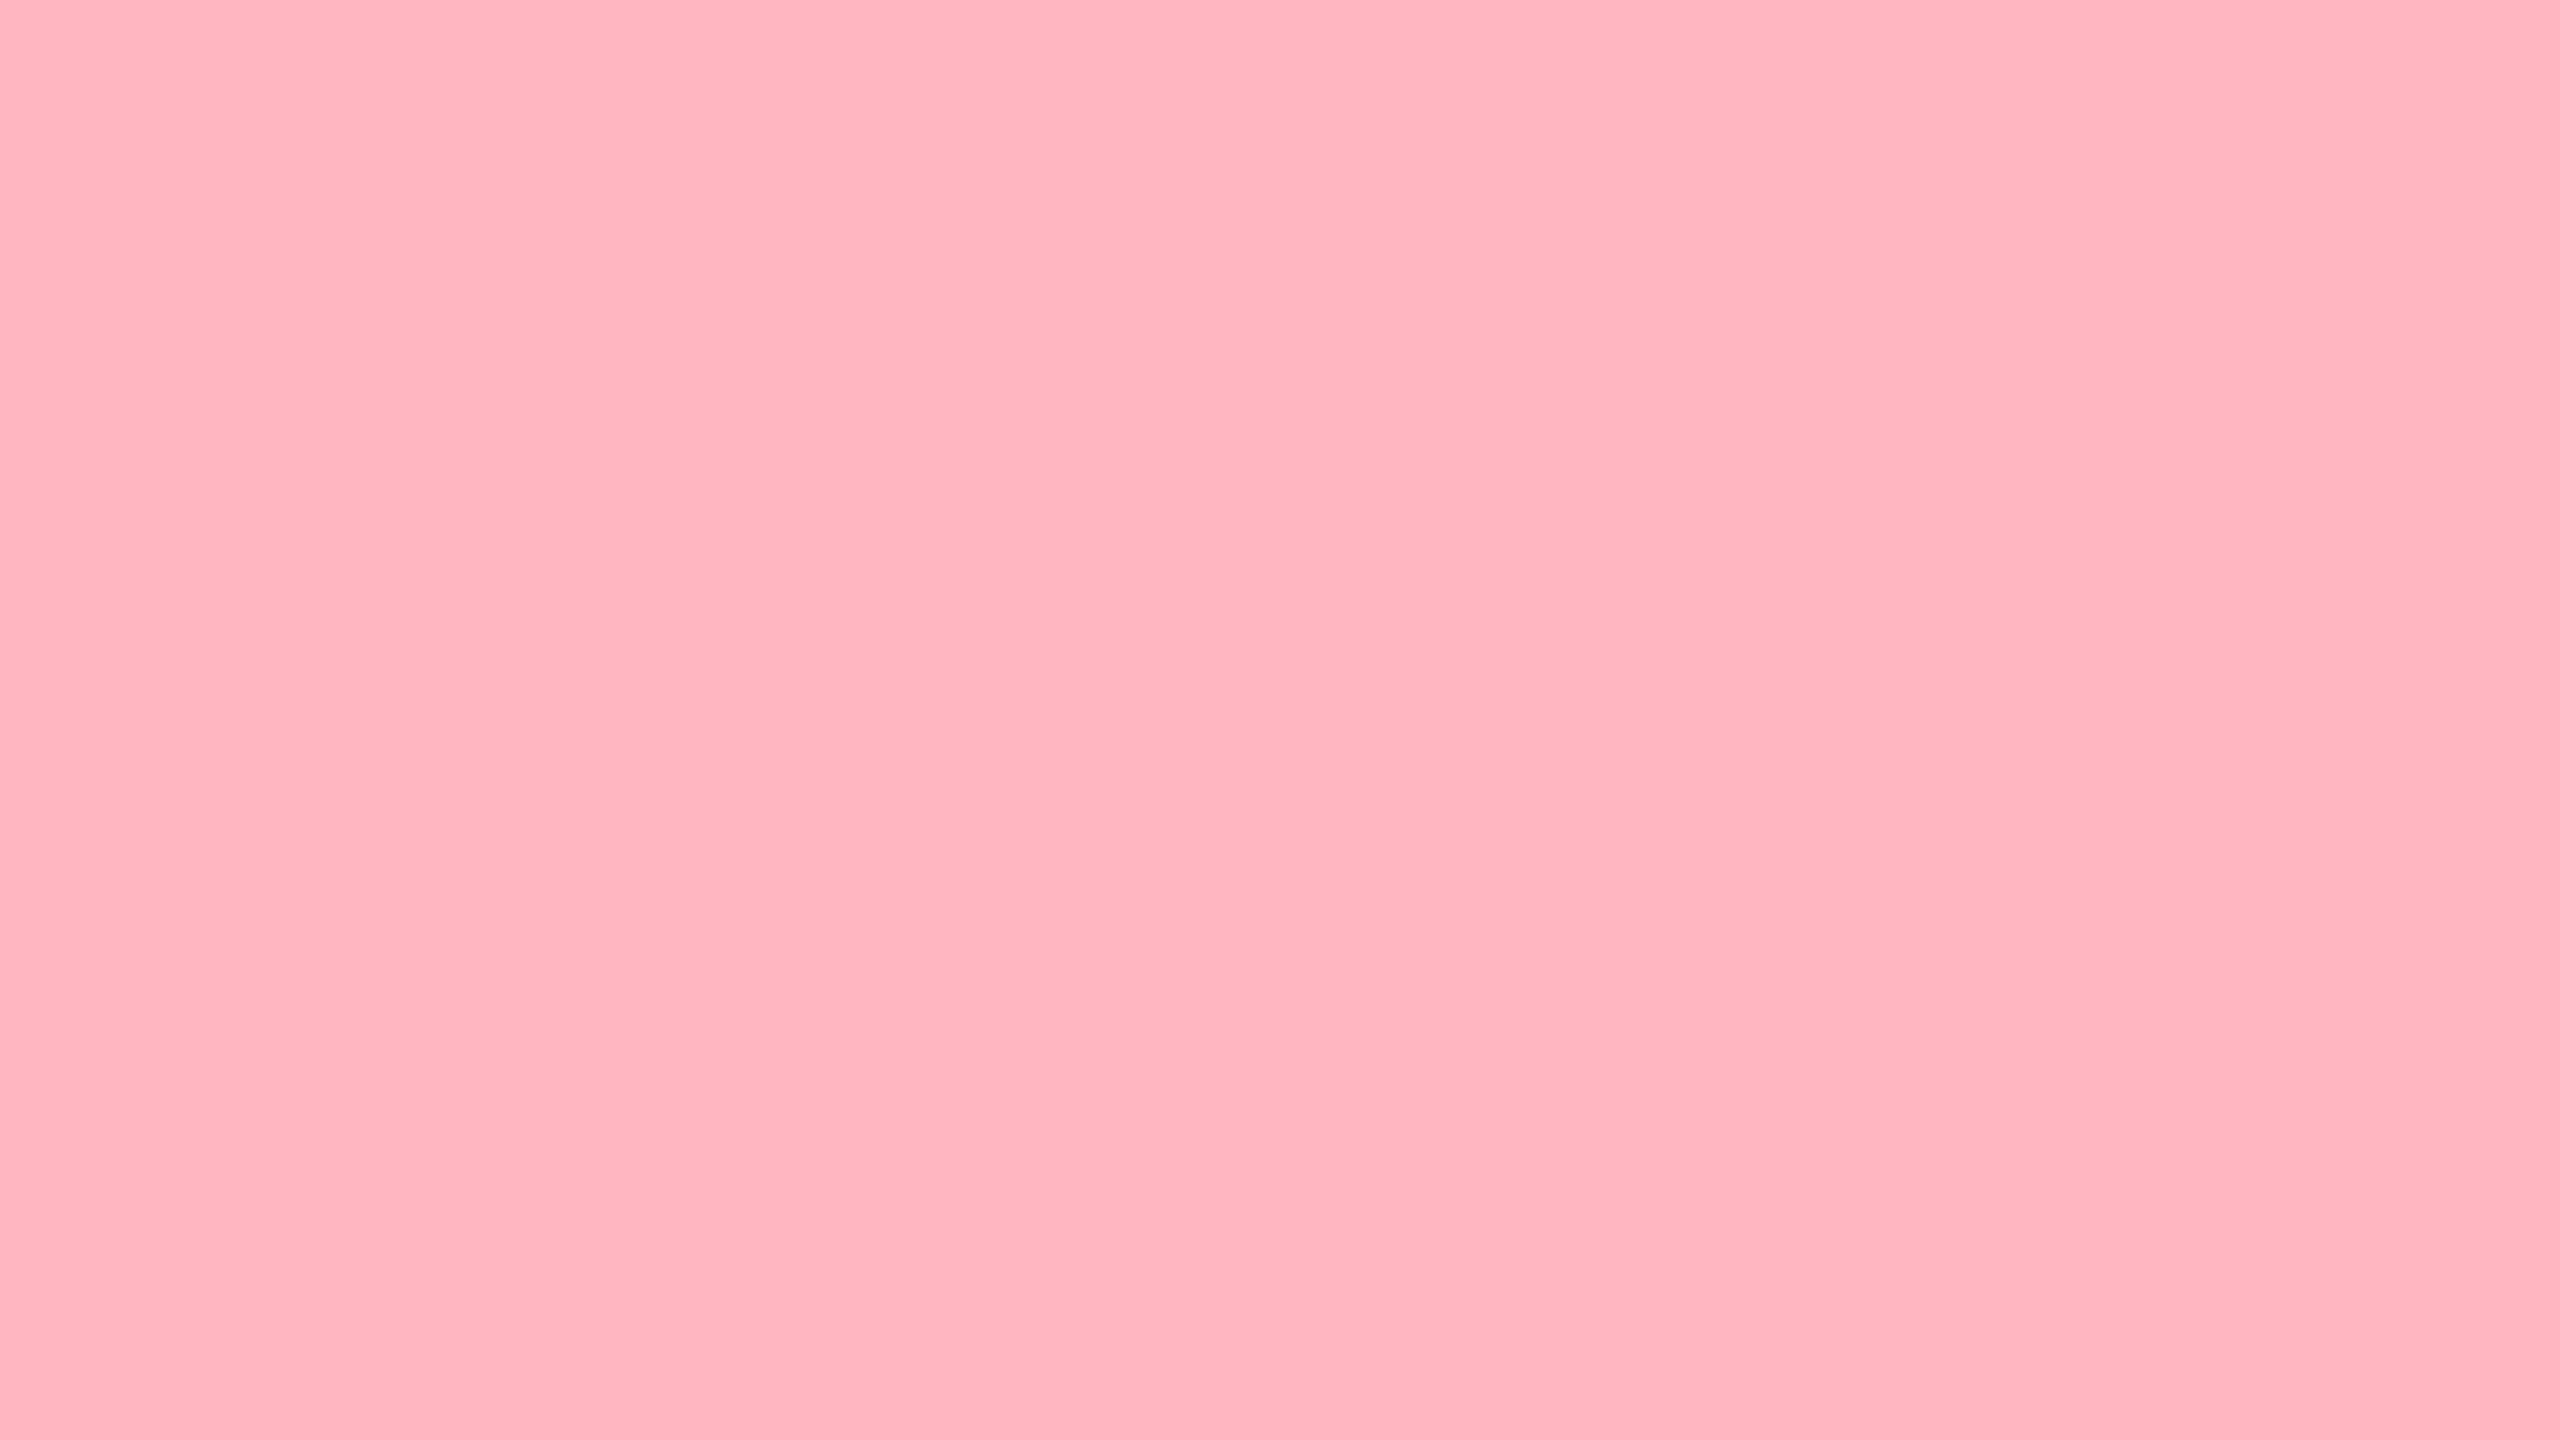 Pastel background download free awesome backgrounds for - Pastel pink wallpaper hd ...